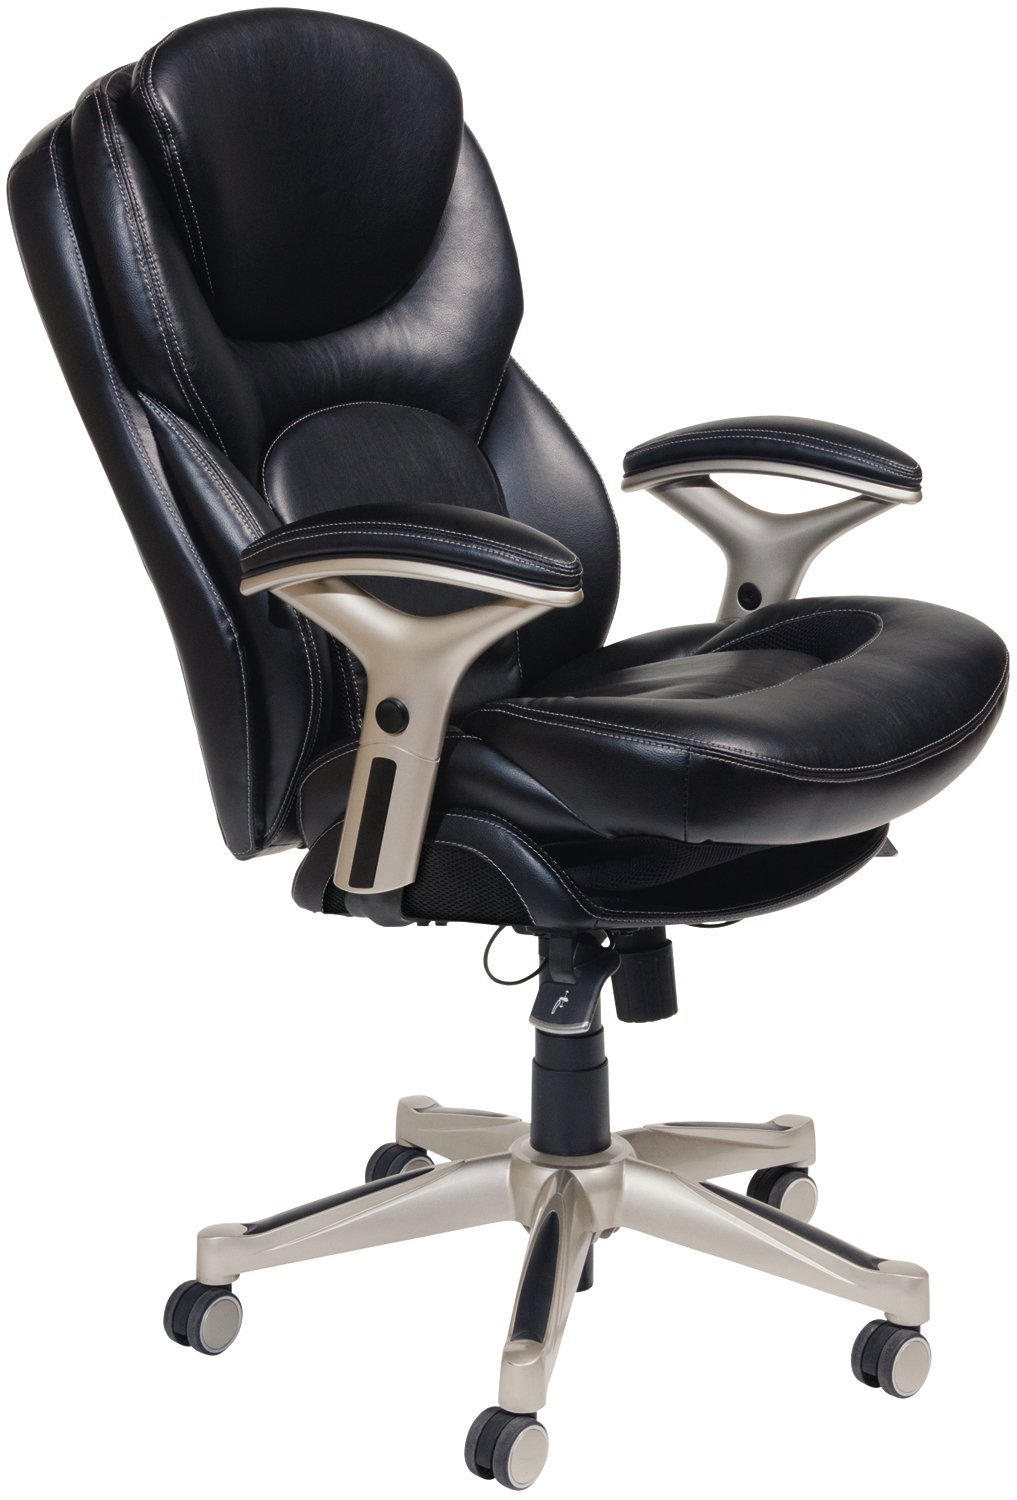 most comfortable office chair under 300 of 2018